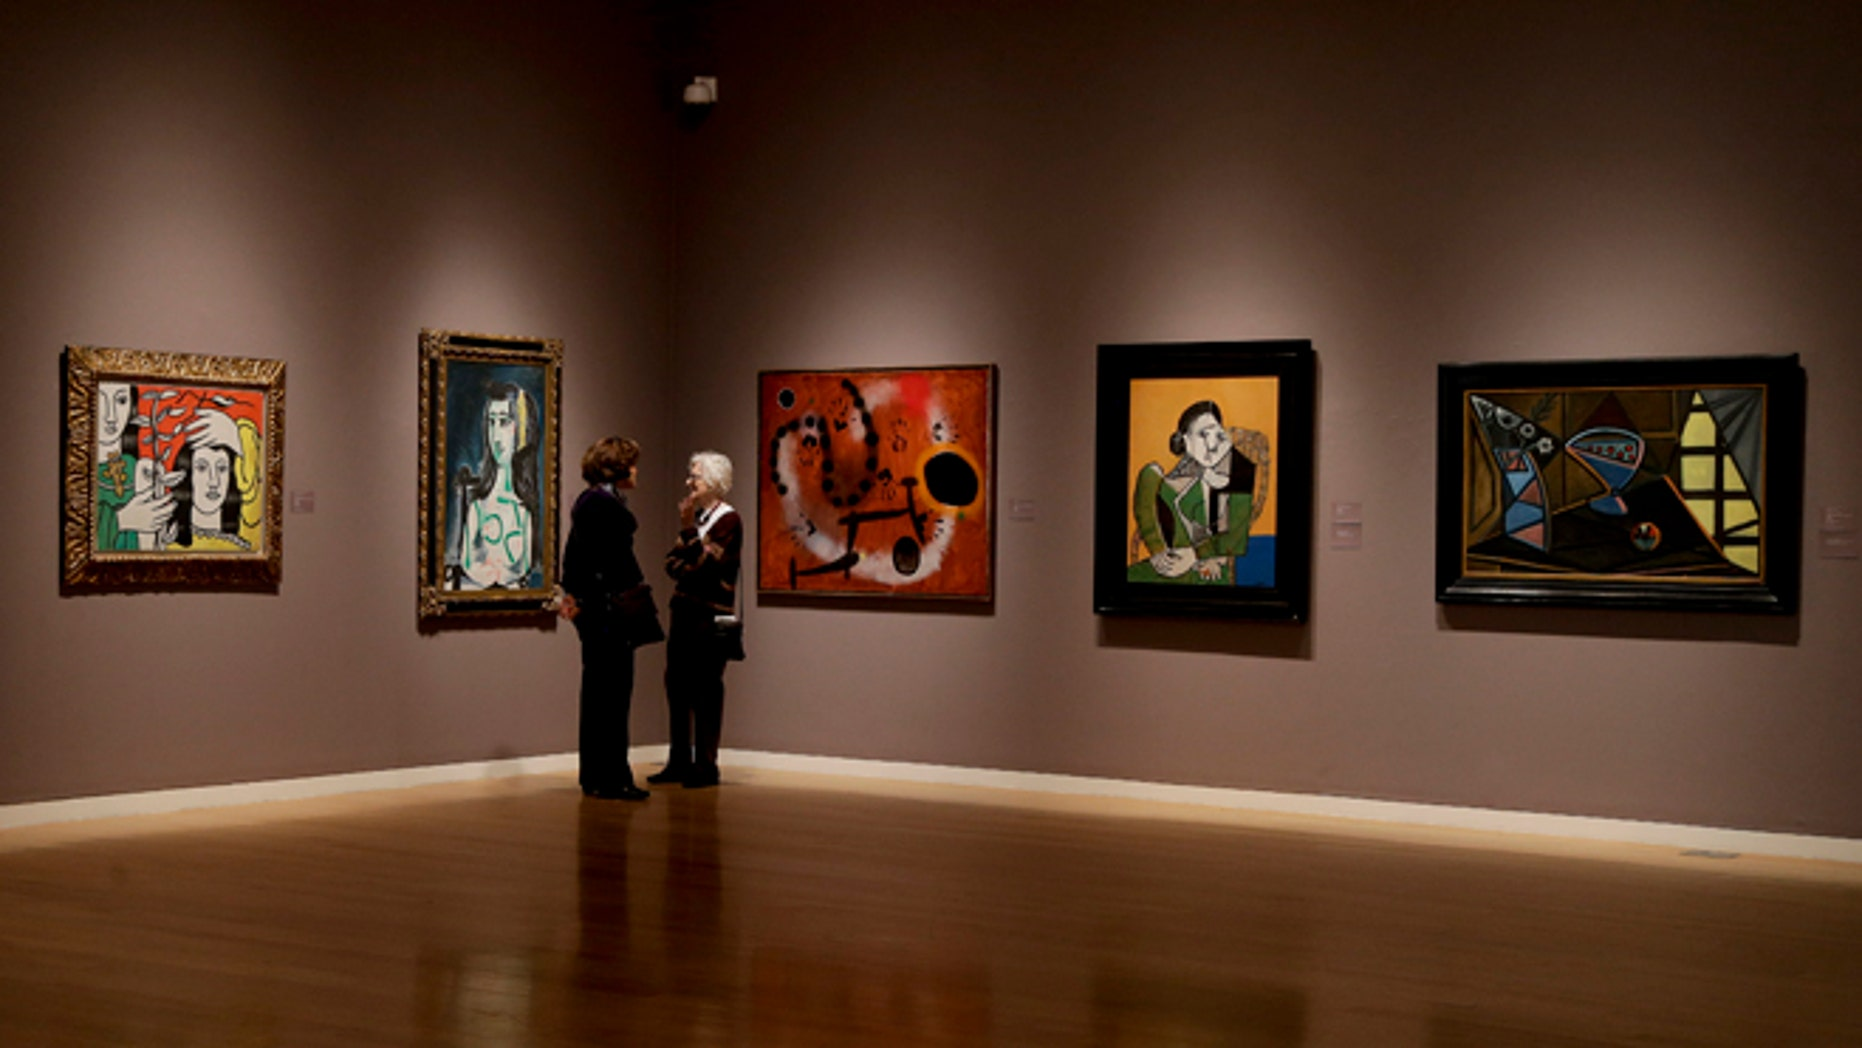 Prospective buyers talk amongst paintings by Pablo Picasso, Joan Miro and Fernand Leger during a preview exhibition for Sotheby's Spring Evening Sale of impressionistic and modern art, Friday, May 2, 2014, in New York. The sale will begin on May 7. (AP Photo/Julie Jacobson)